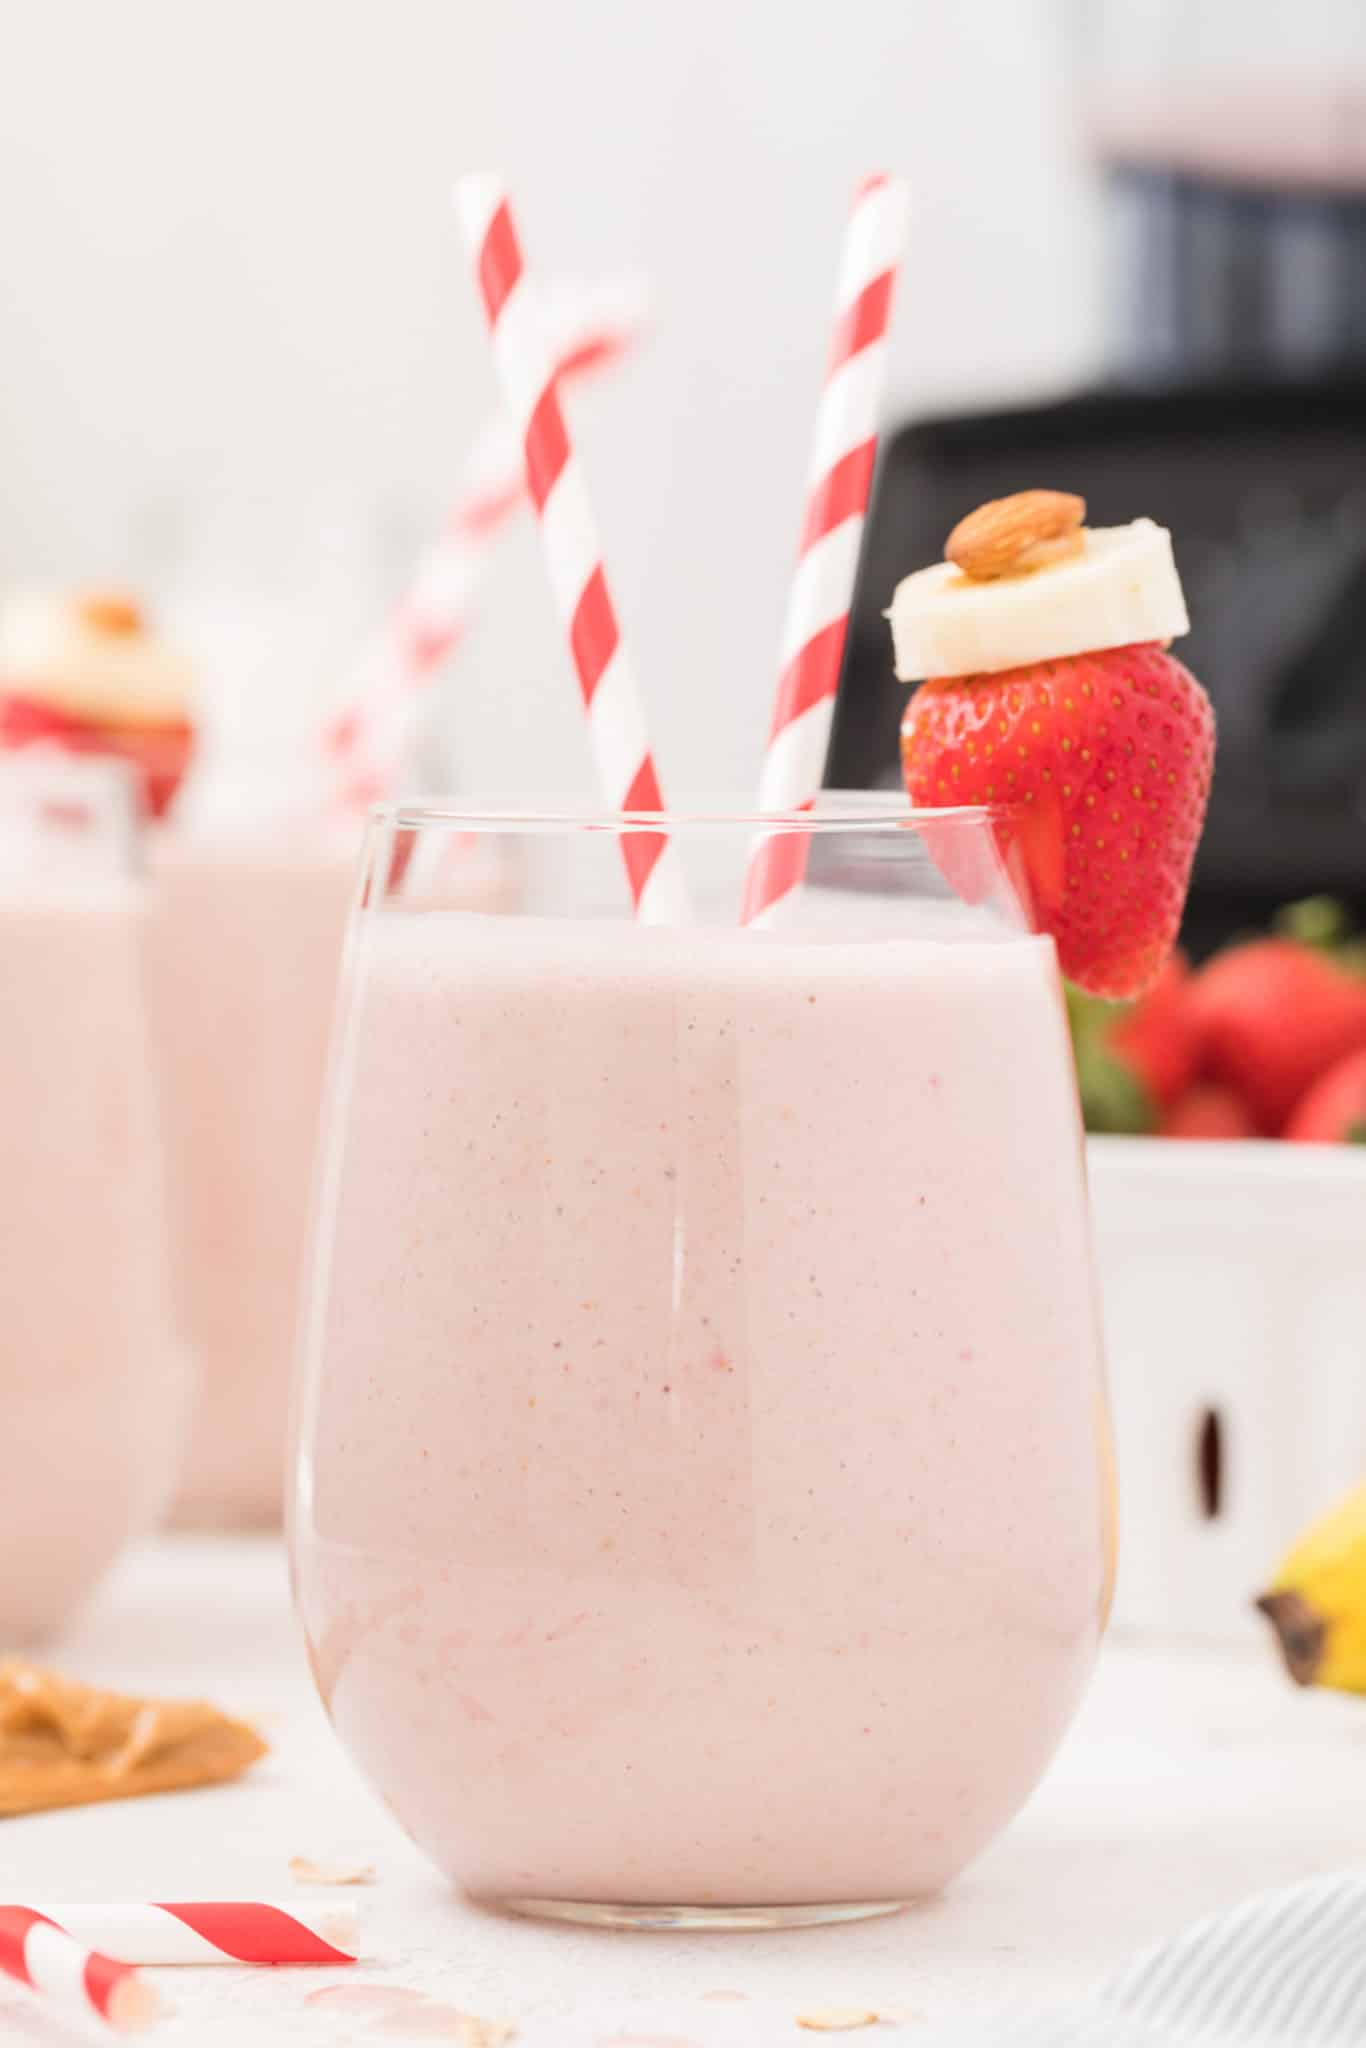 strawberry banana oatmeal smoothie served in a glass on a table